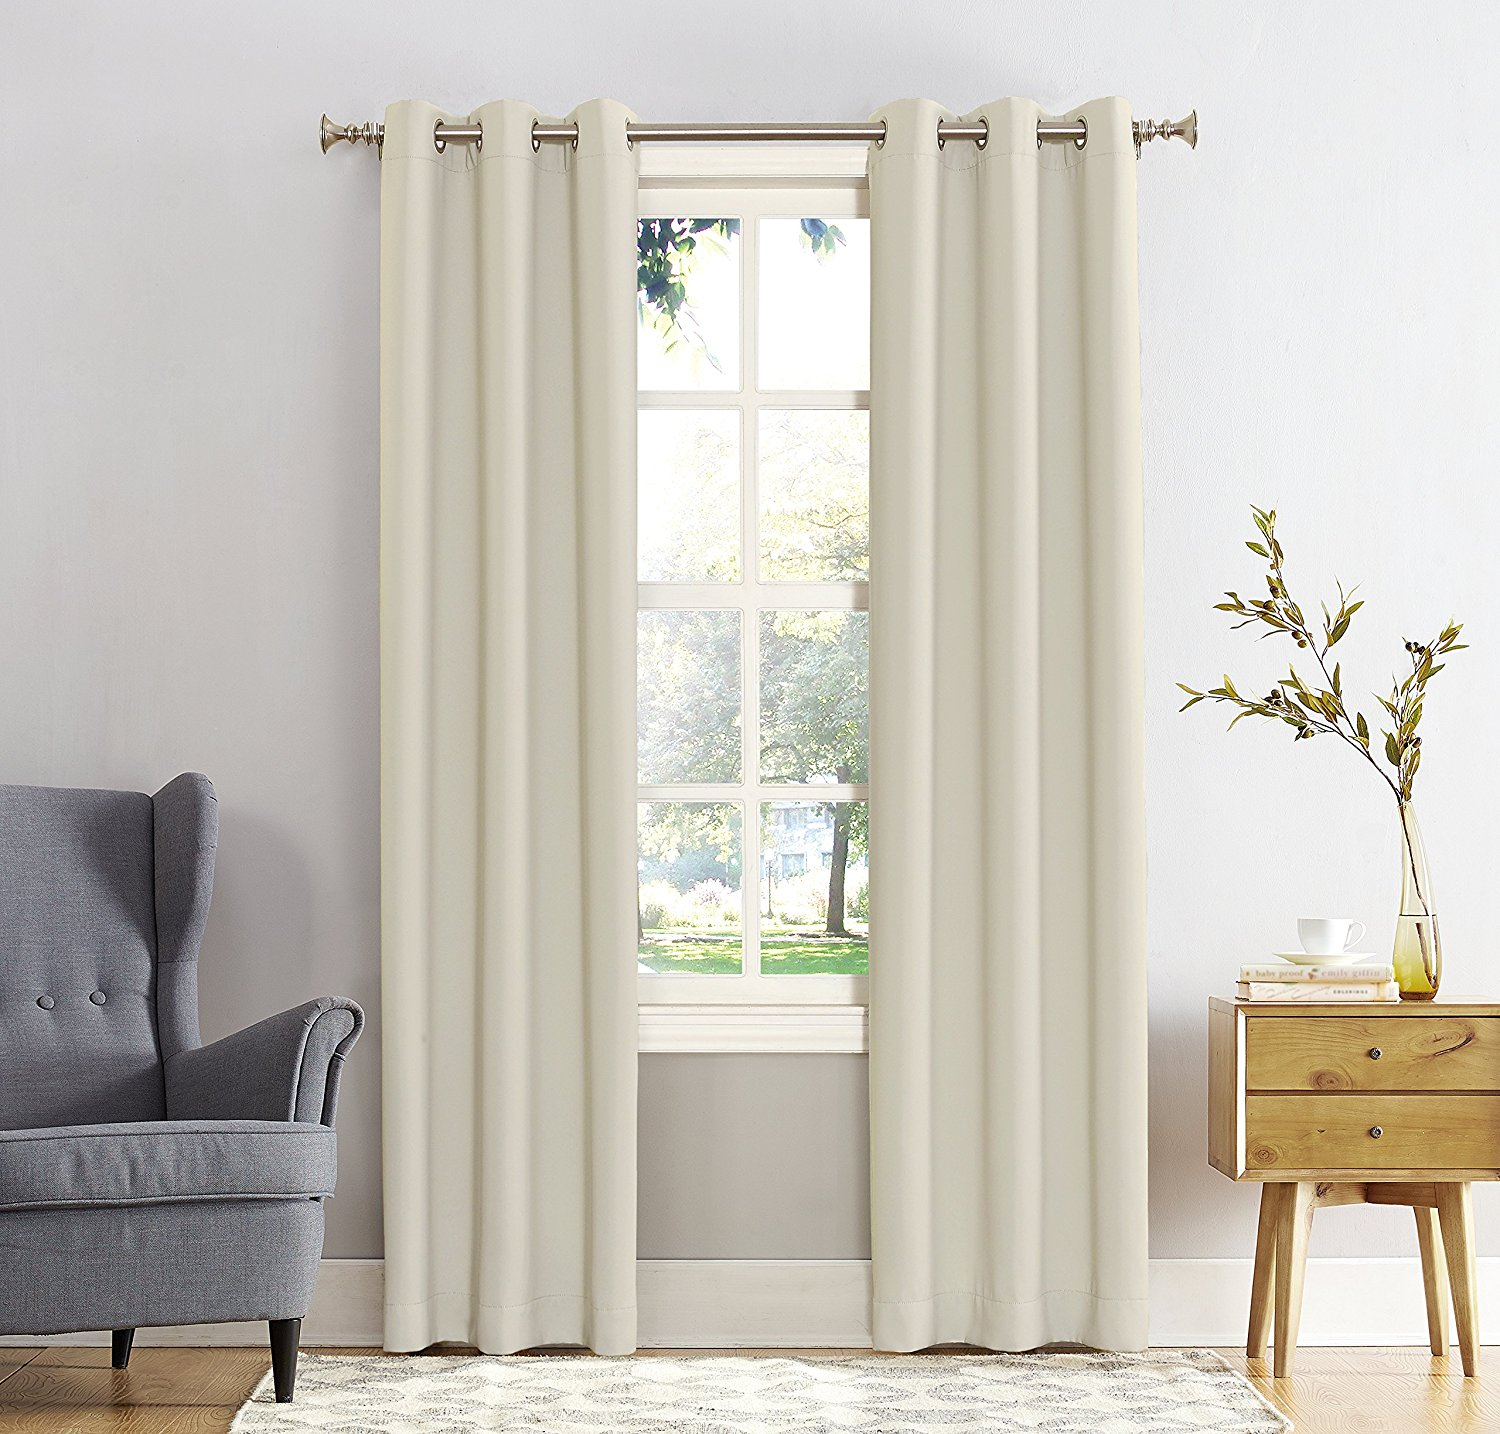 Southern Living Blackout Curtains